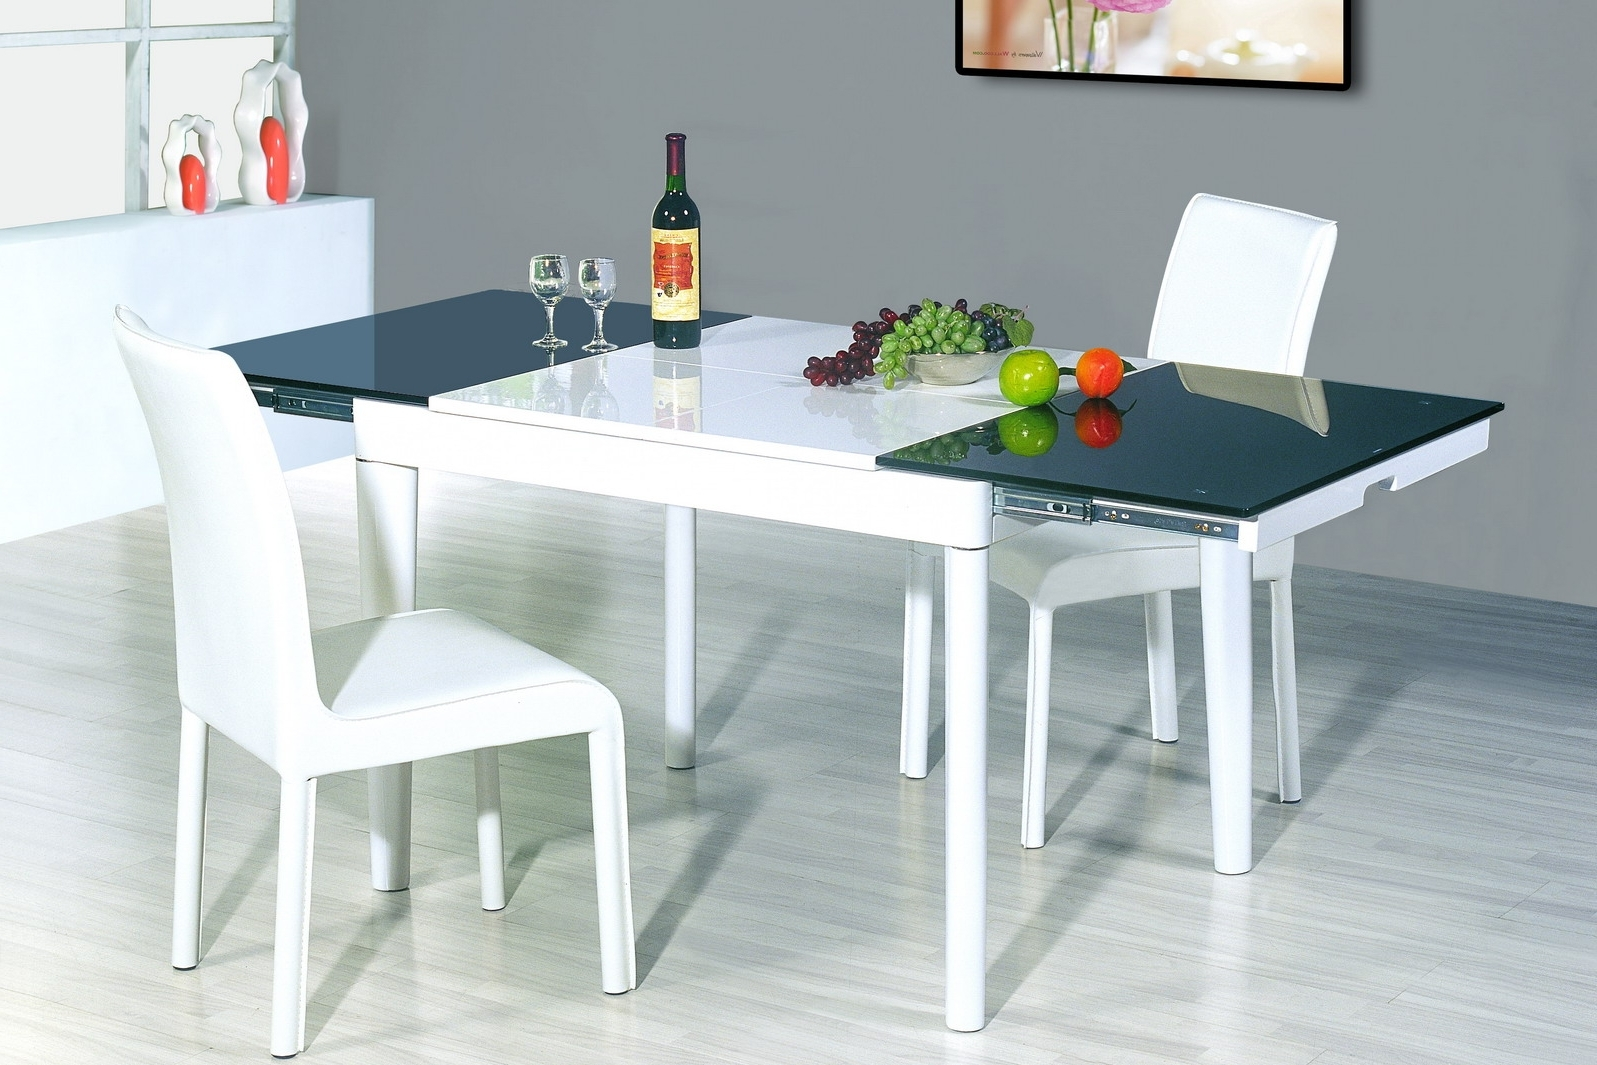 Fancy Futuristic Modern Kitchen Table Set With Expandable Top And Inside Favorite Small Extendable Dining Table Sets (View 6 of 25)